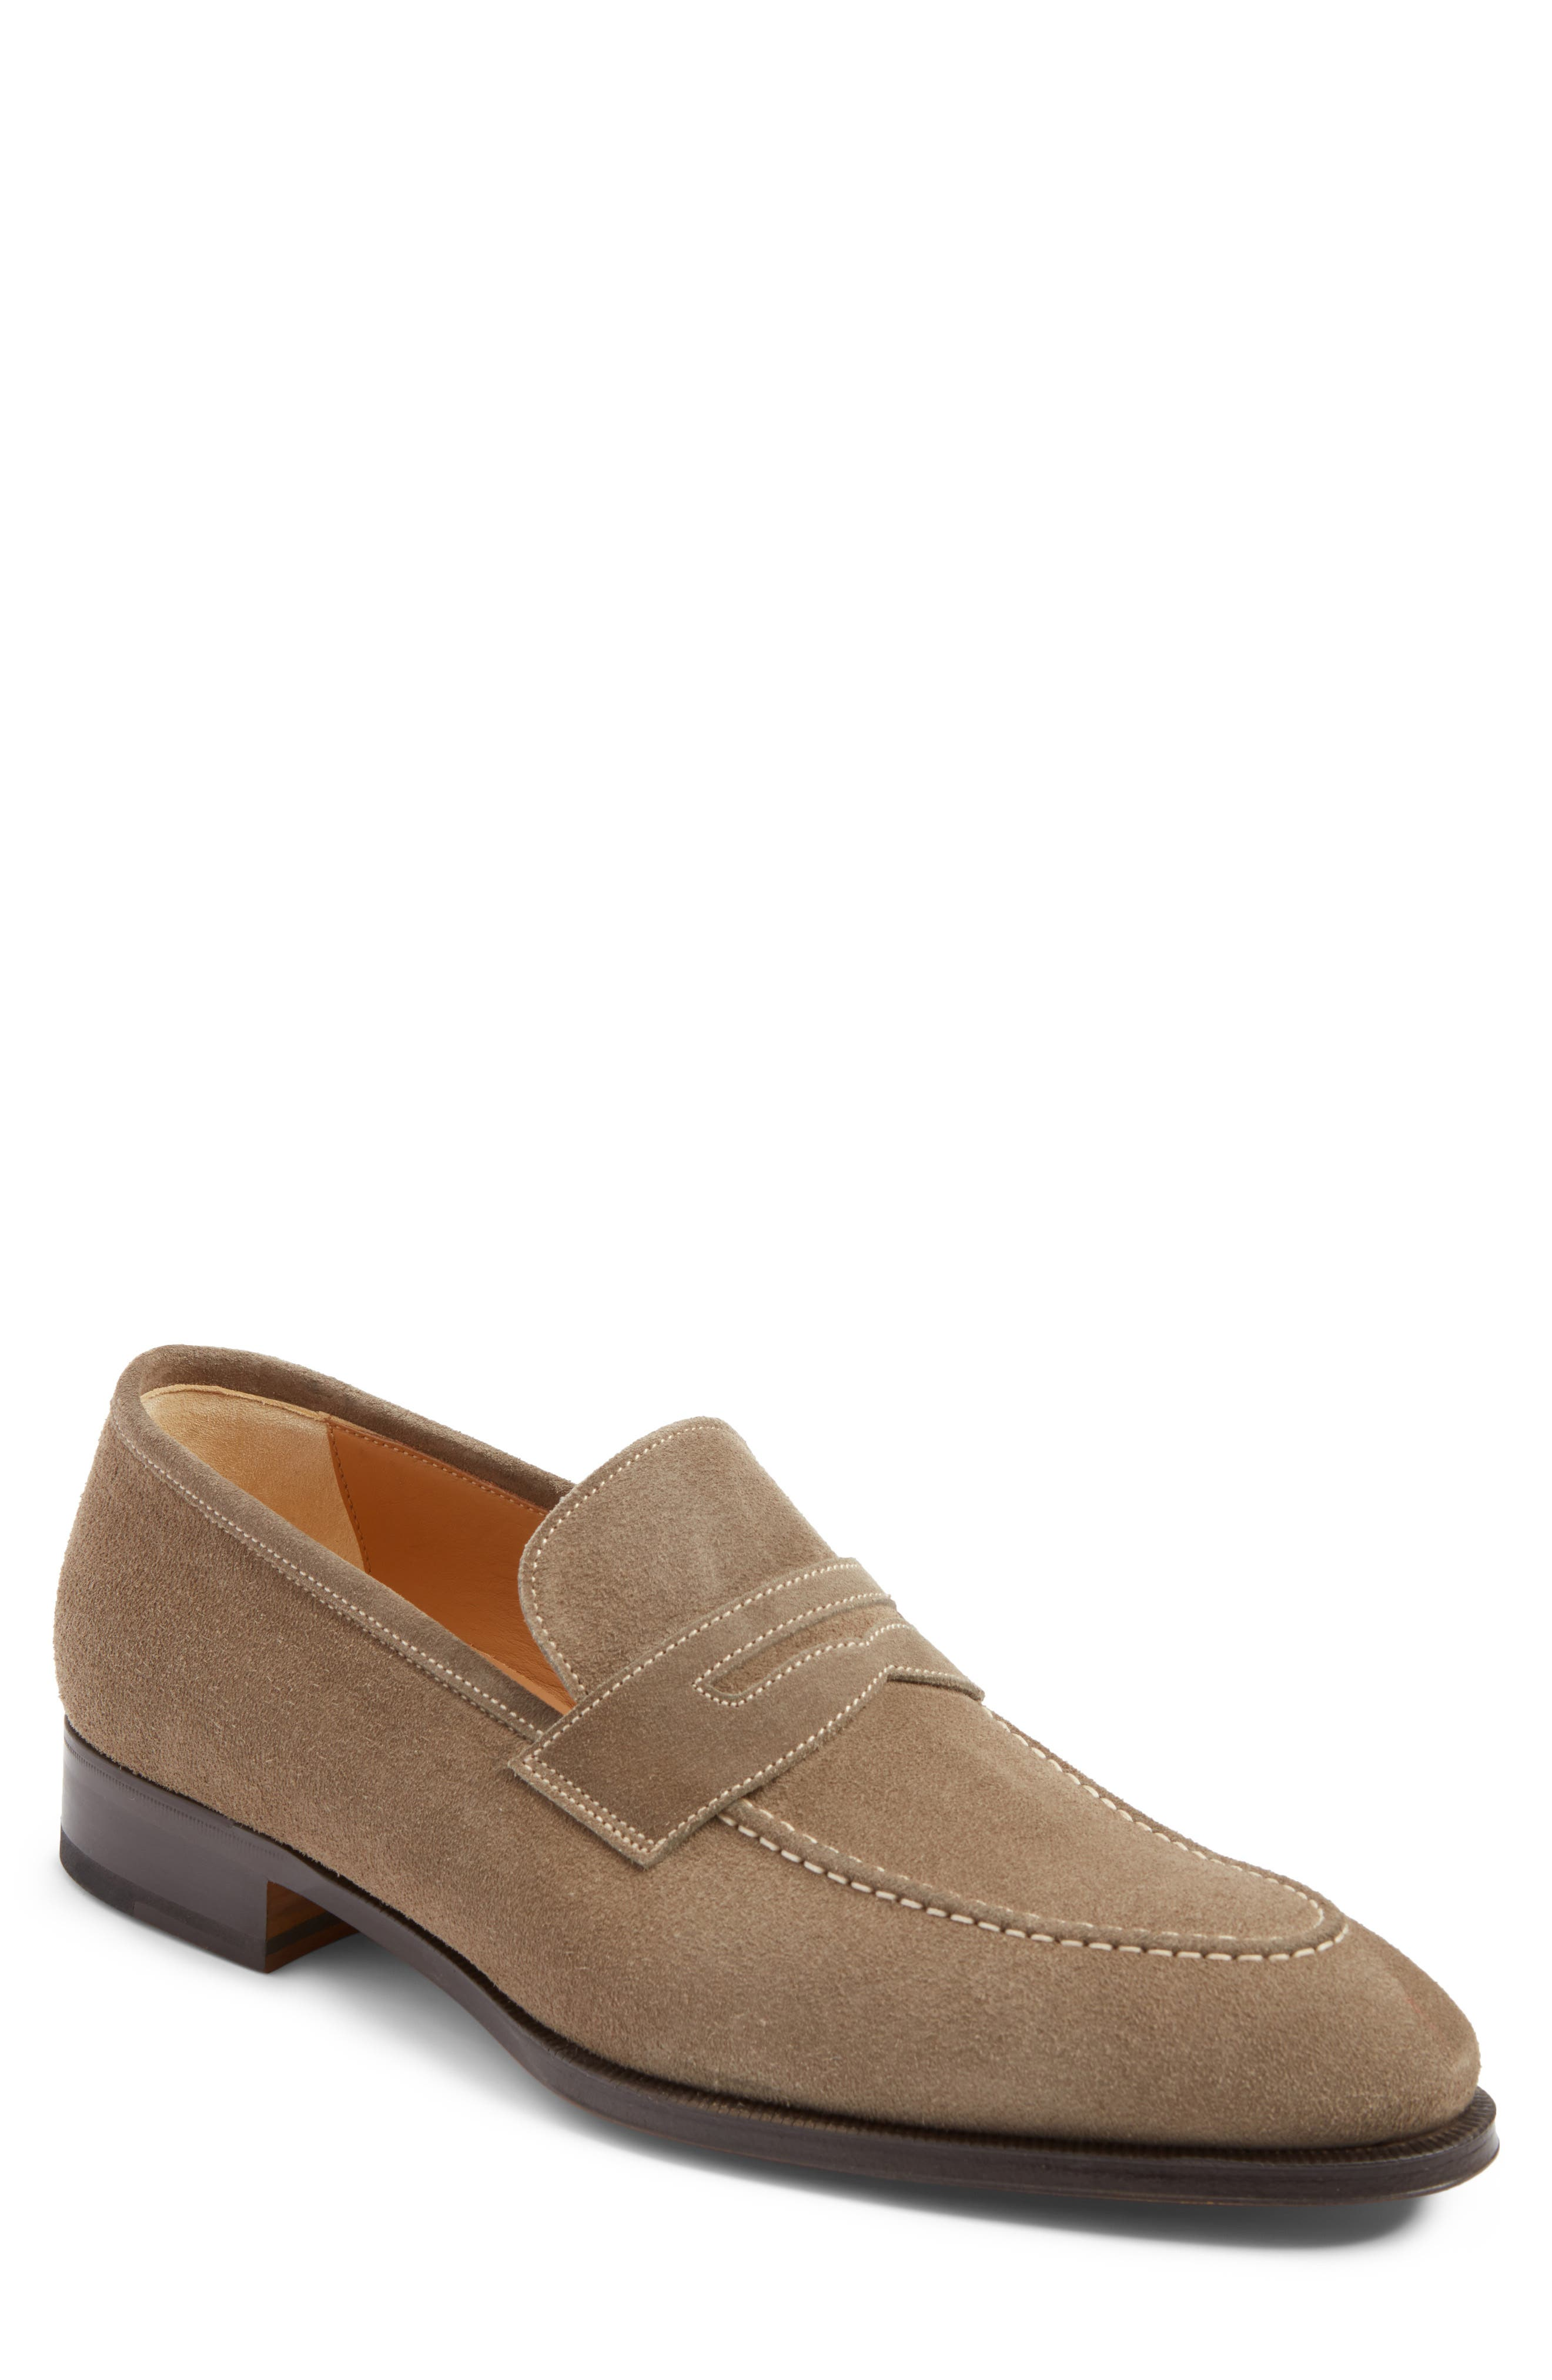 Di Bianco Gallo Leather Penny Loafer (Men)